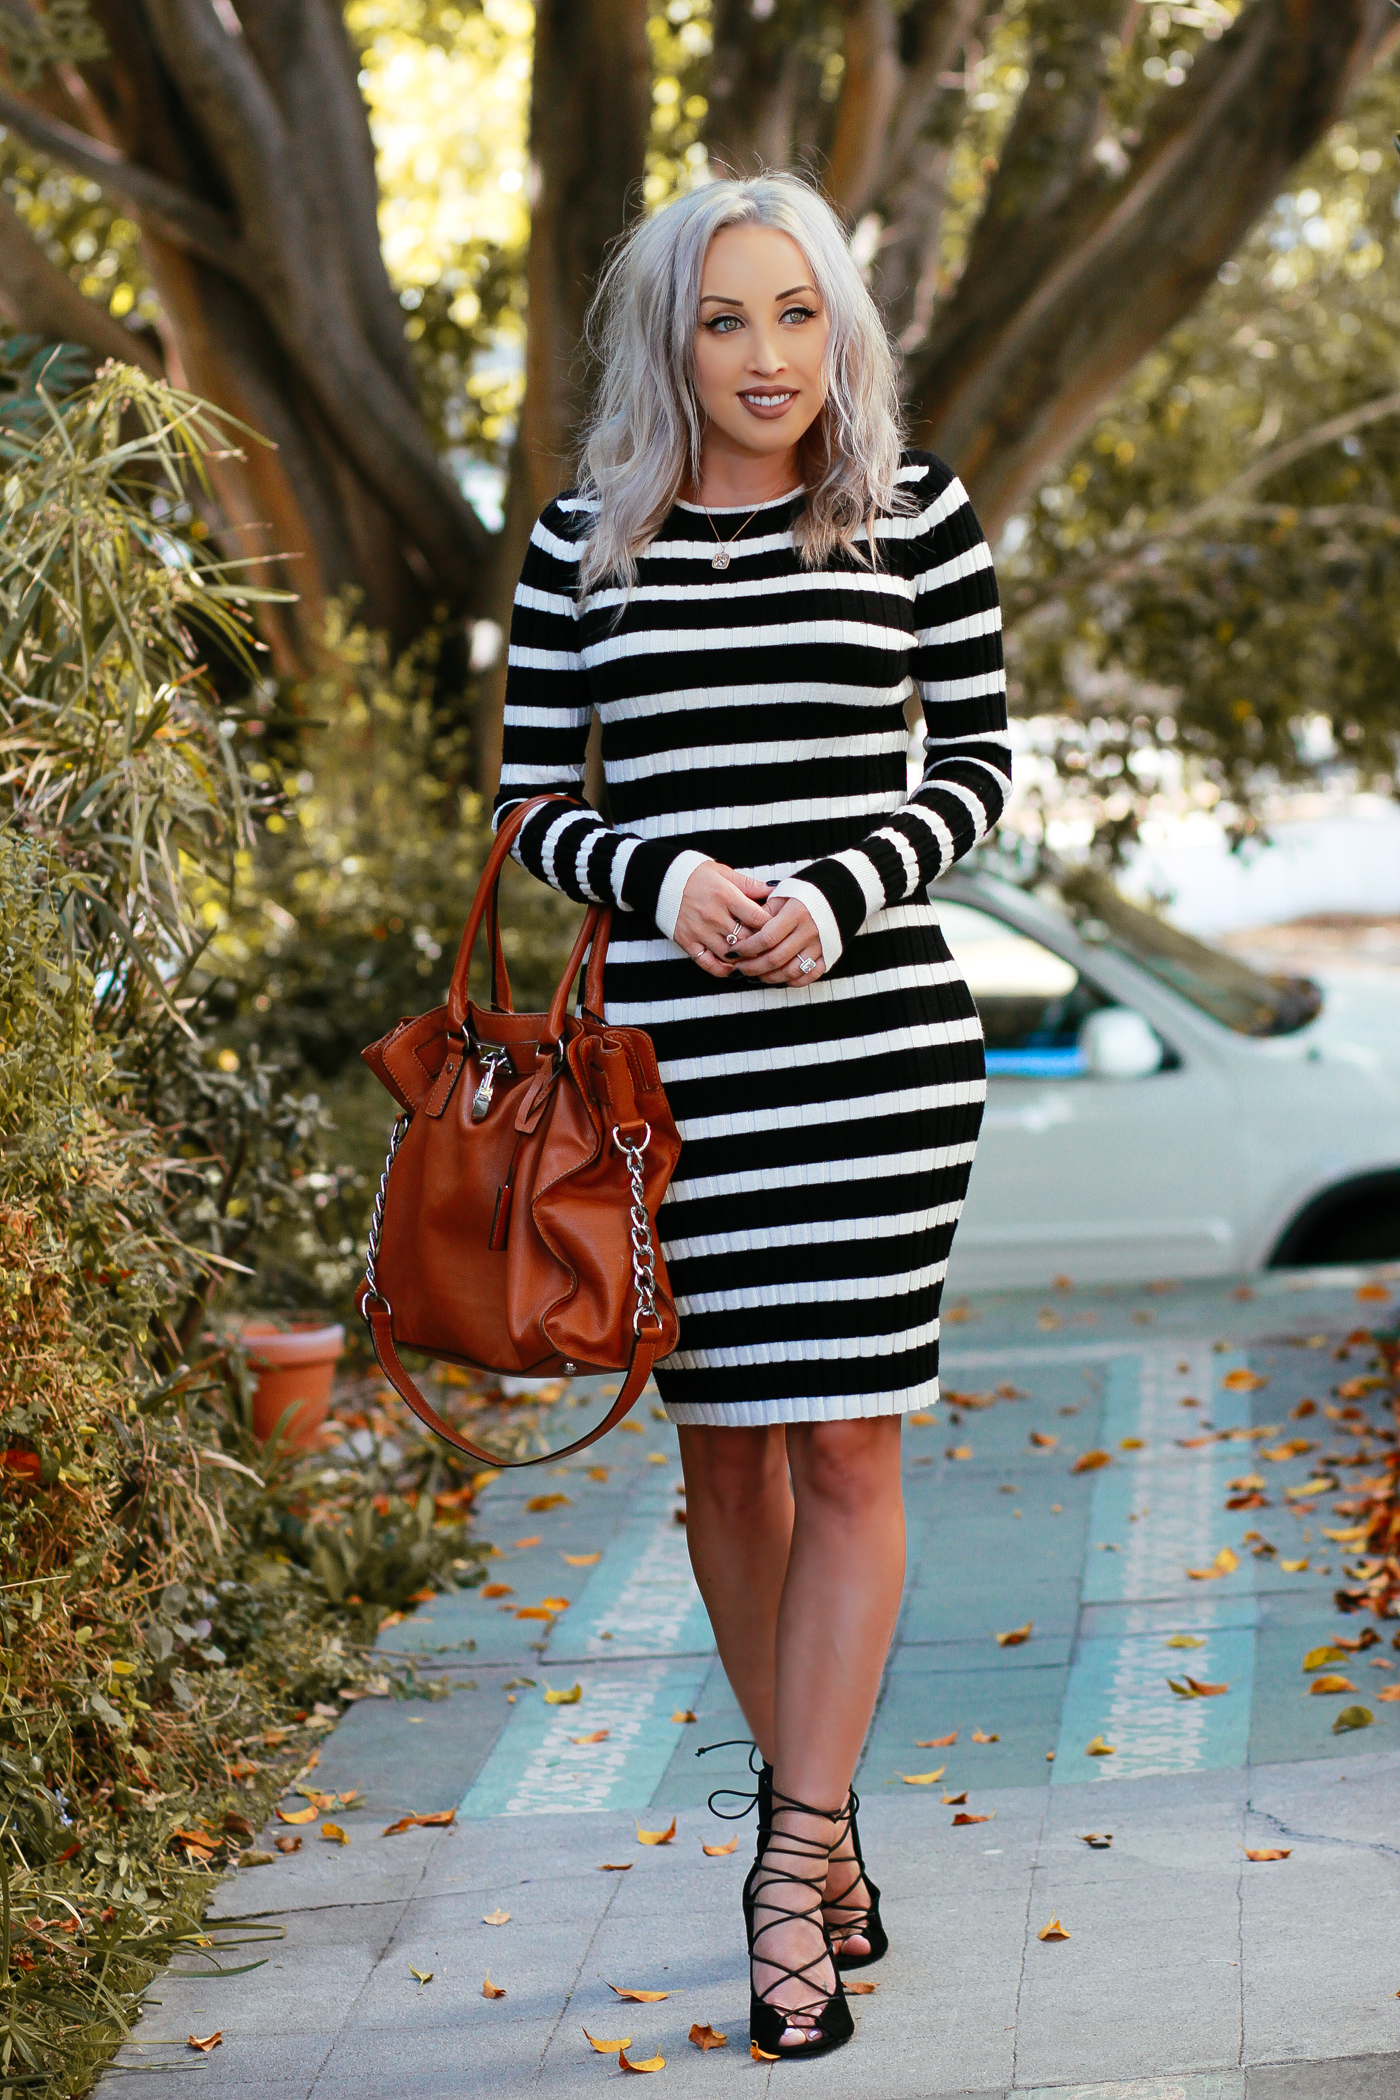 Blondie in the City | Cozy Striped Sweater Dress | @nakdfashion lace up heels | Fall Fashion Street Style